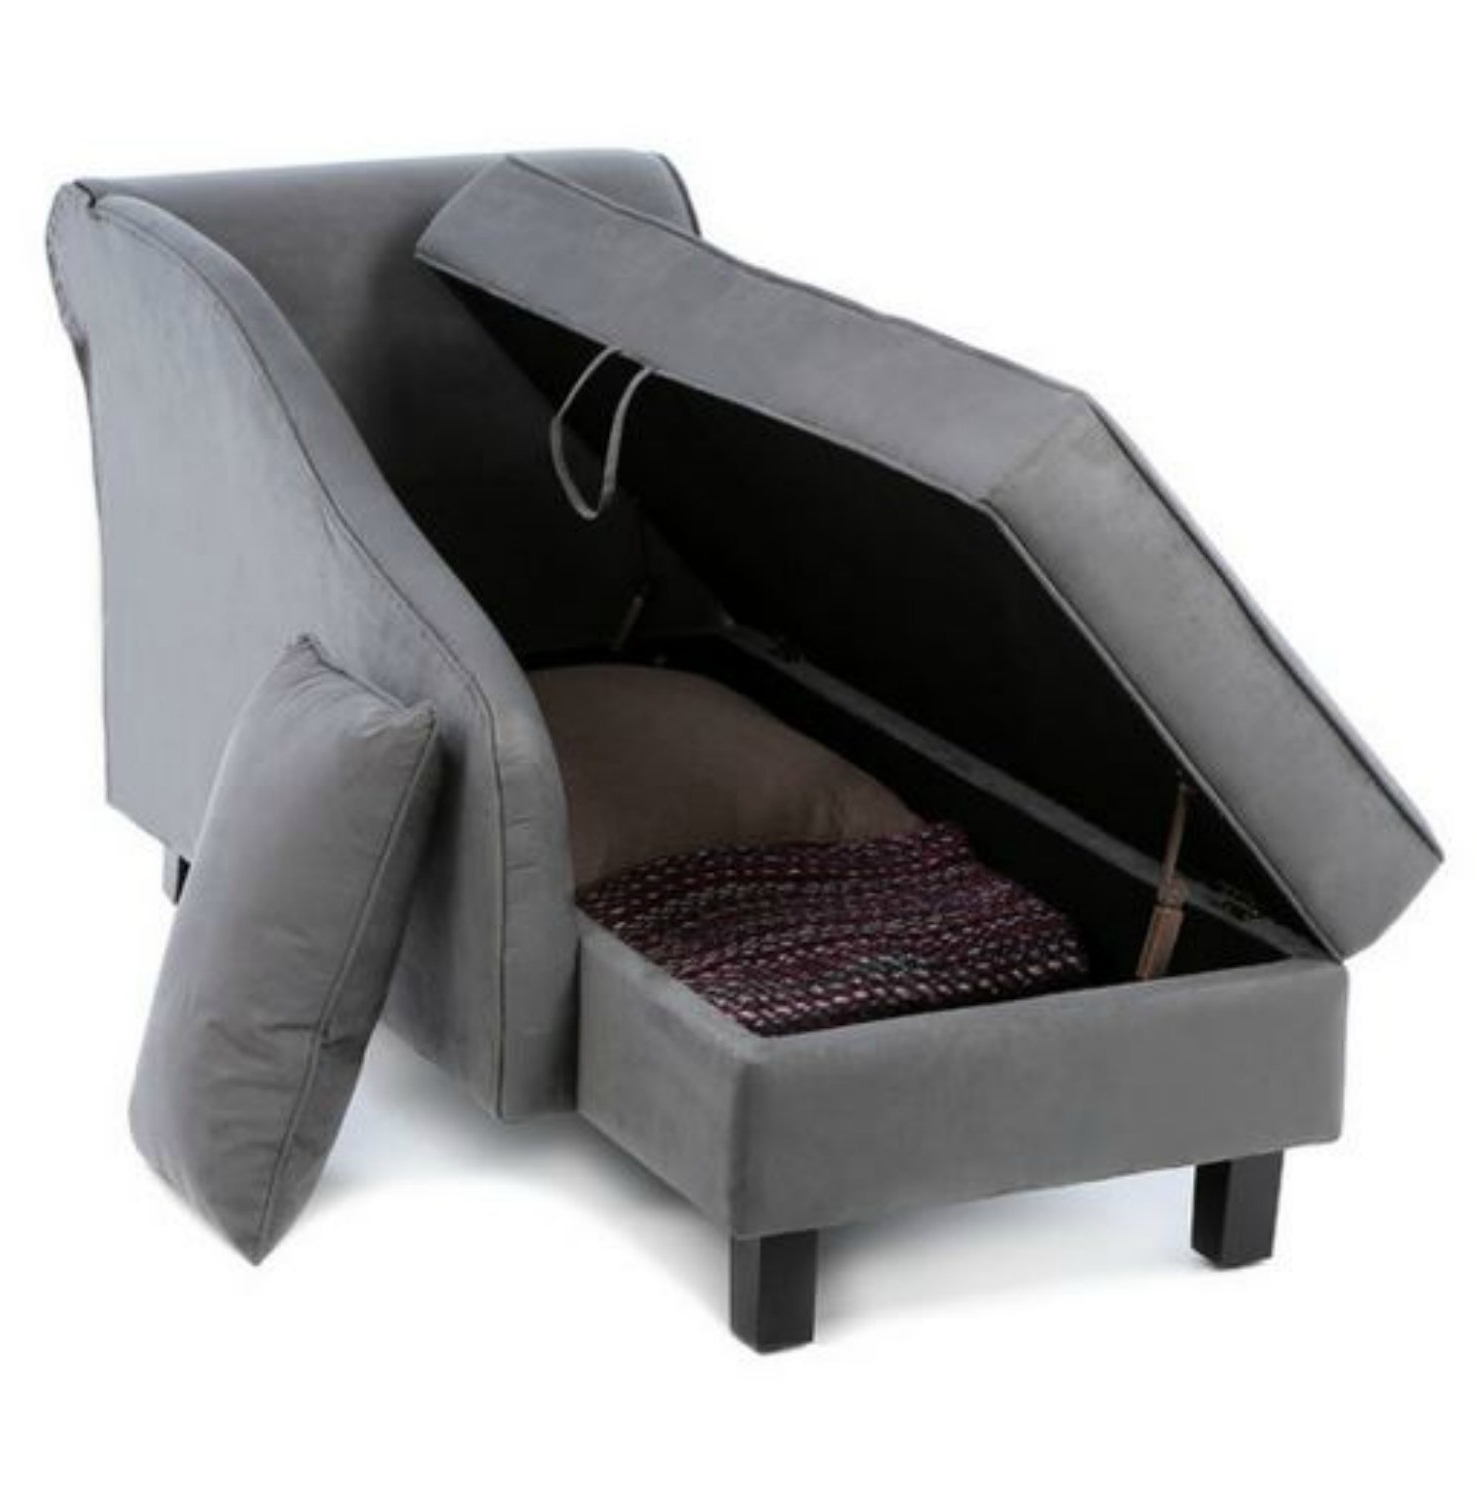 Amazon: Storage Chaise Lounge Chair This Microfiber Regarding Favorite Grey  Chaise Lounge Chairs (View